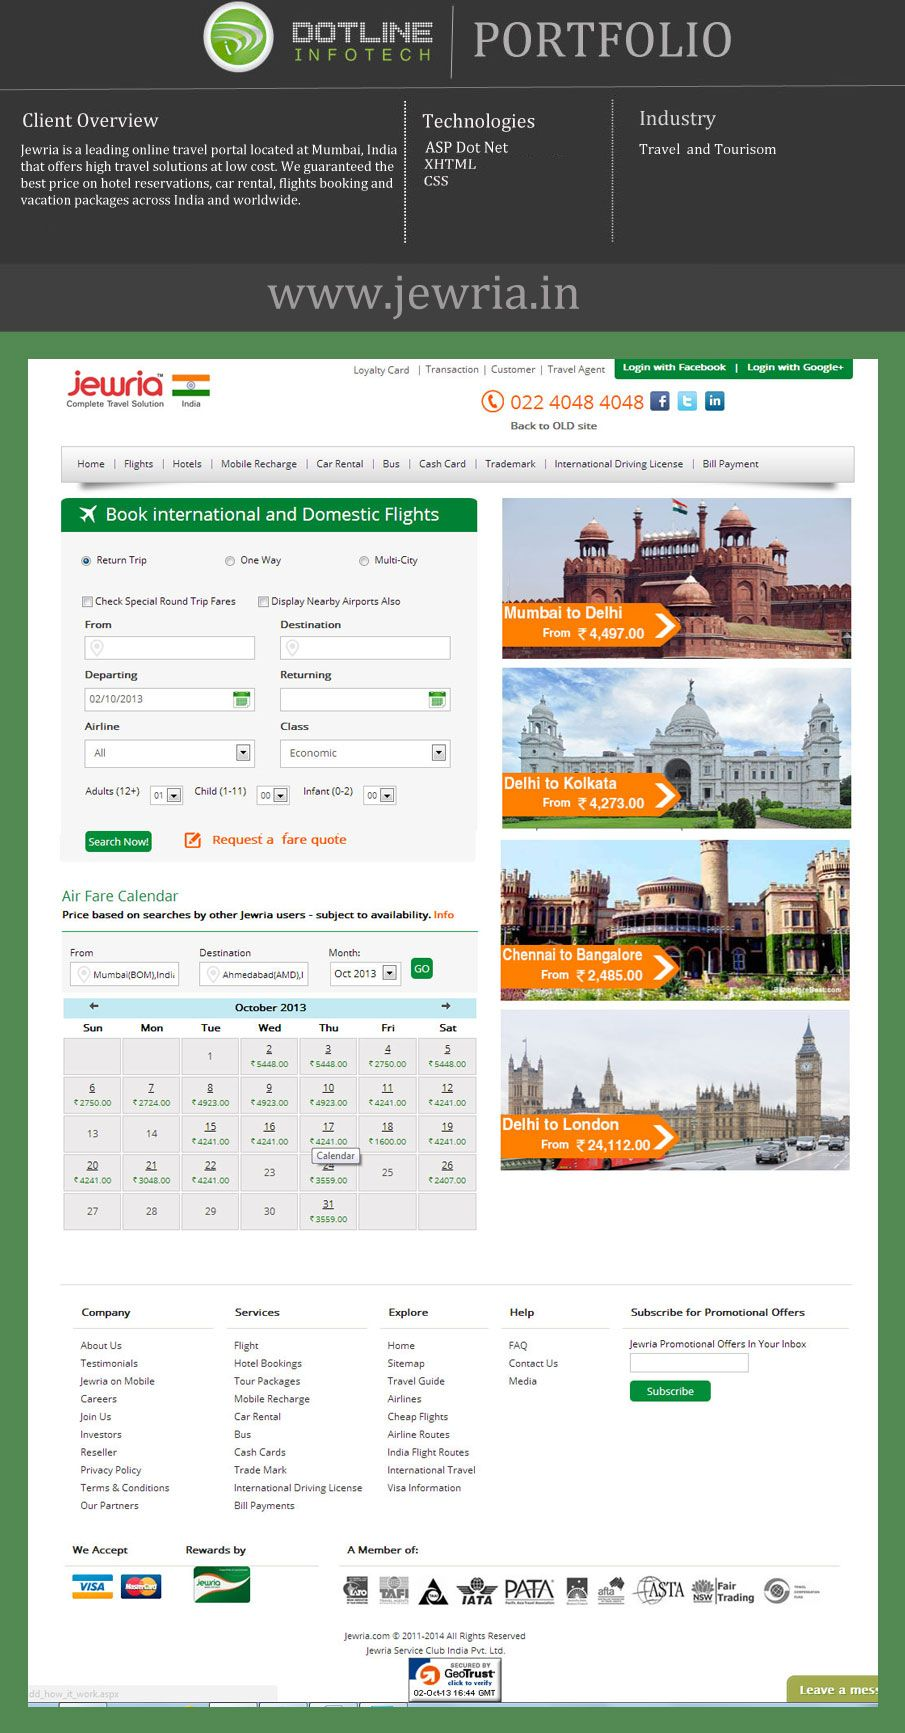 Jewria a leading online travel portal offers high travel